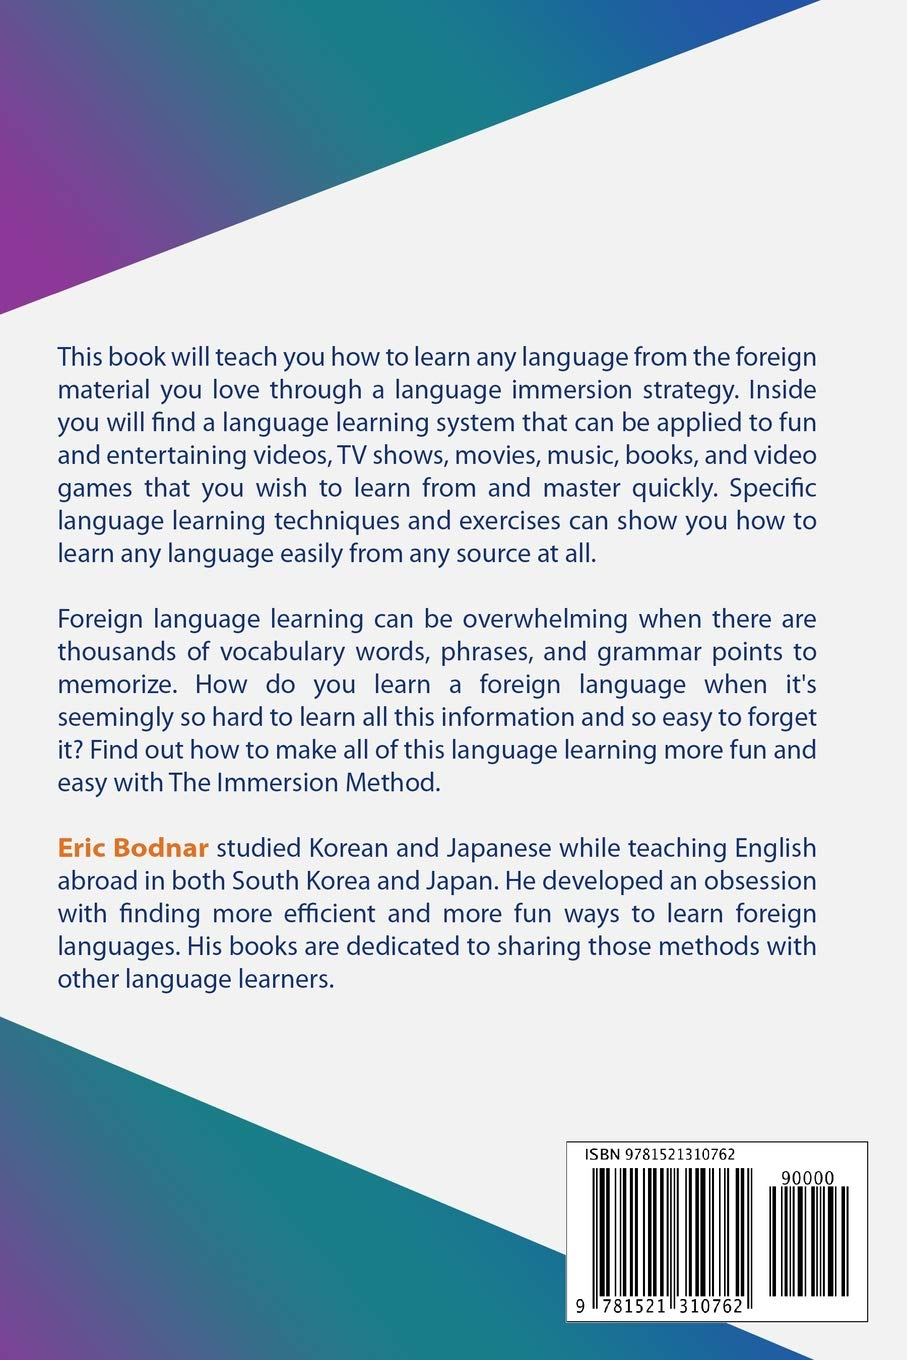 Buy The Immersion Method: How to Learn Any Language from What You Love Book  Online at Low Prices in India | The Immersion Method: How to Learn Any  Language ...